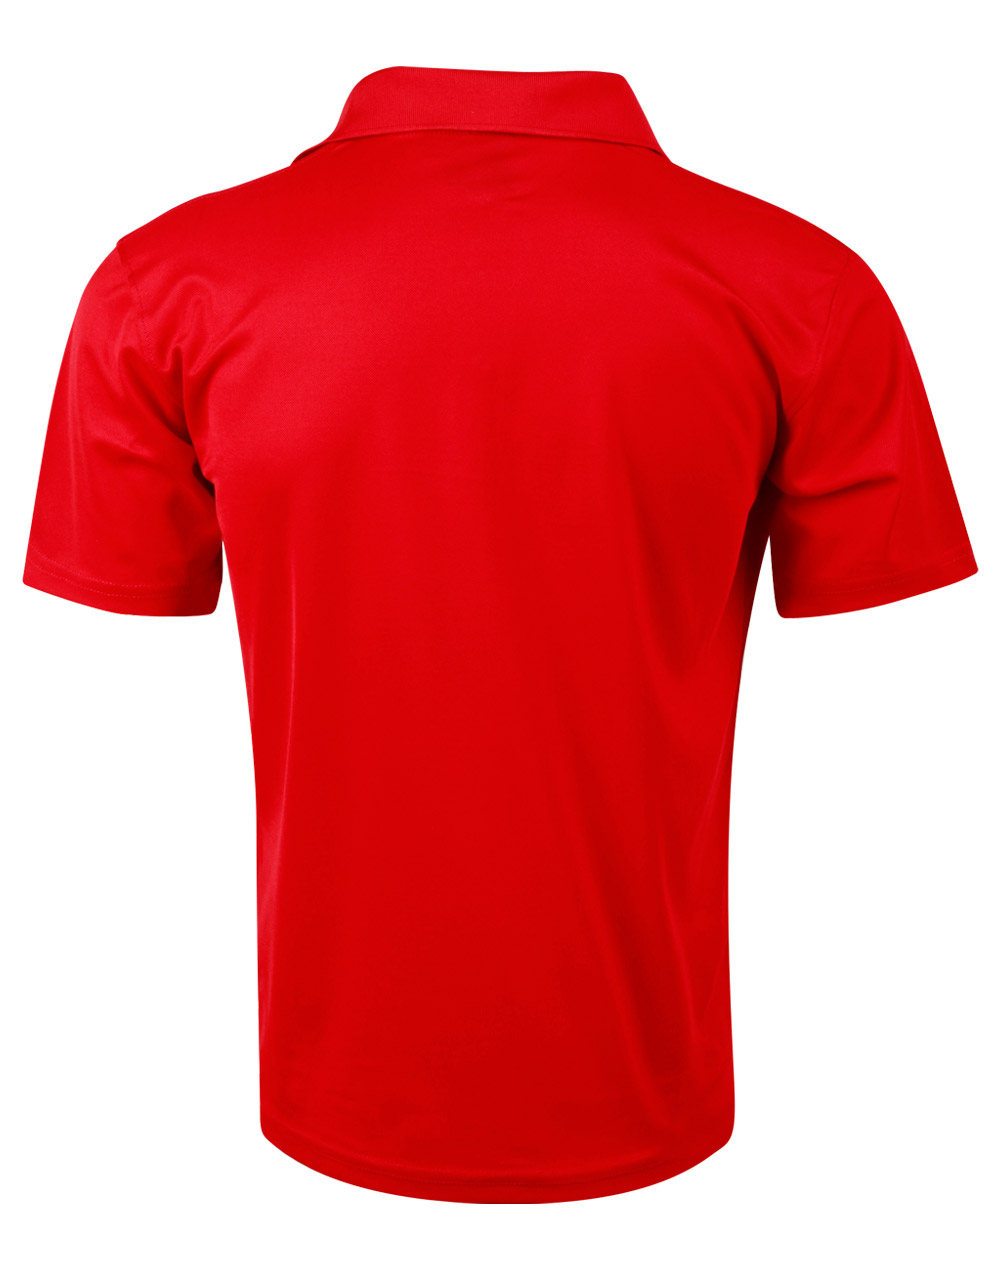 https://s3-ap-southeast-1.amazonaws.com/ws-imgs/POLOSHIRTS/PS81_Red_Back.jpg